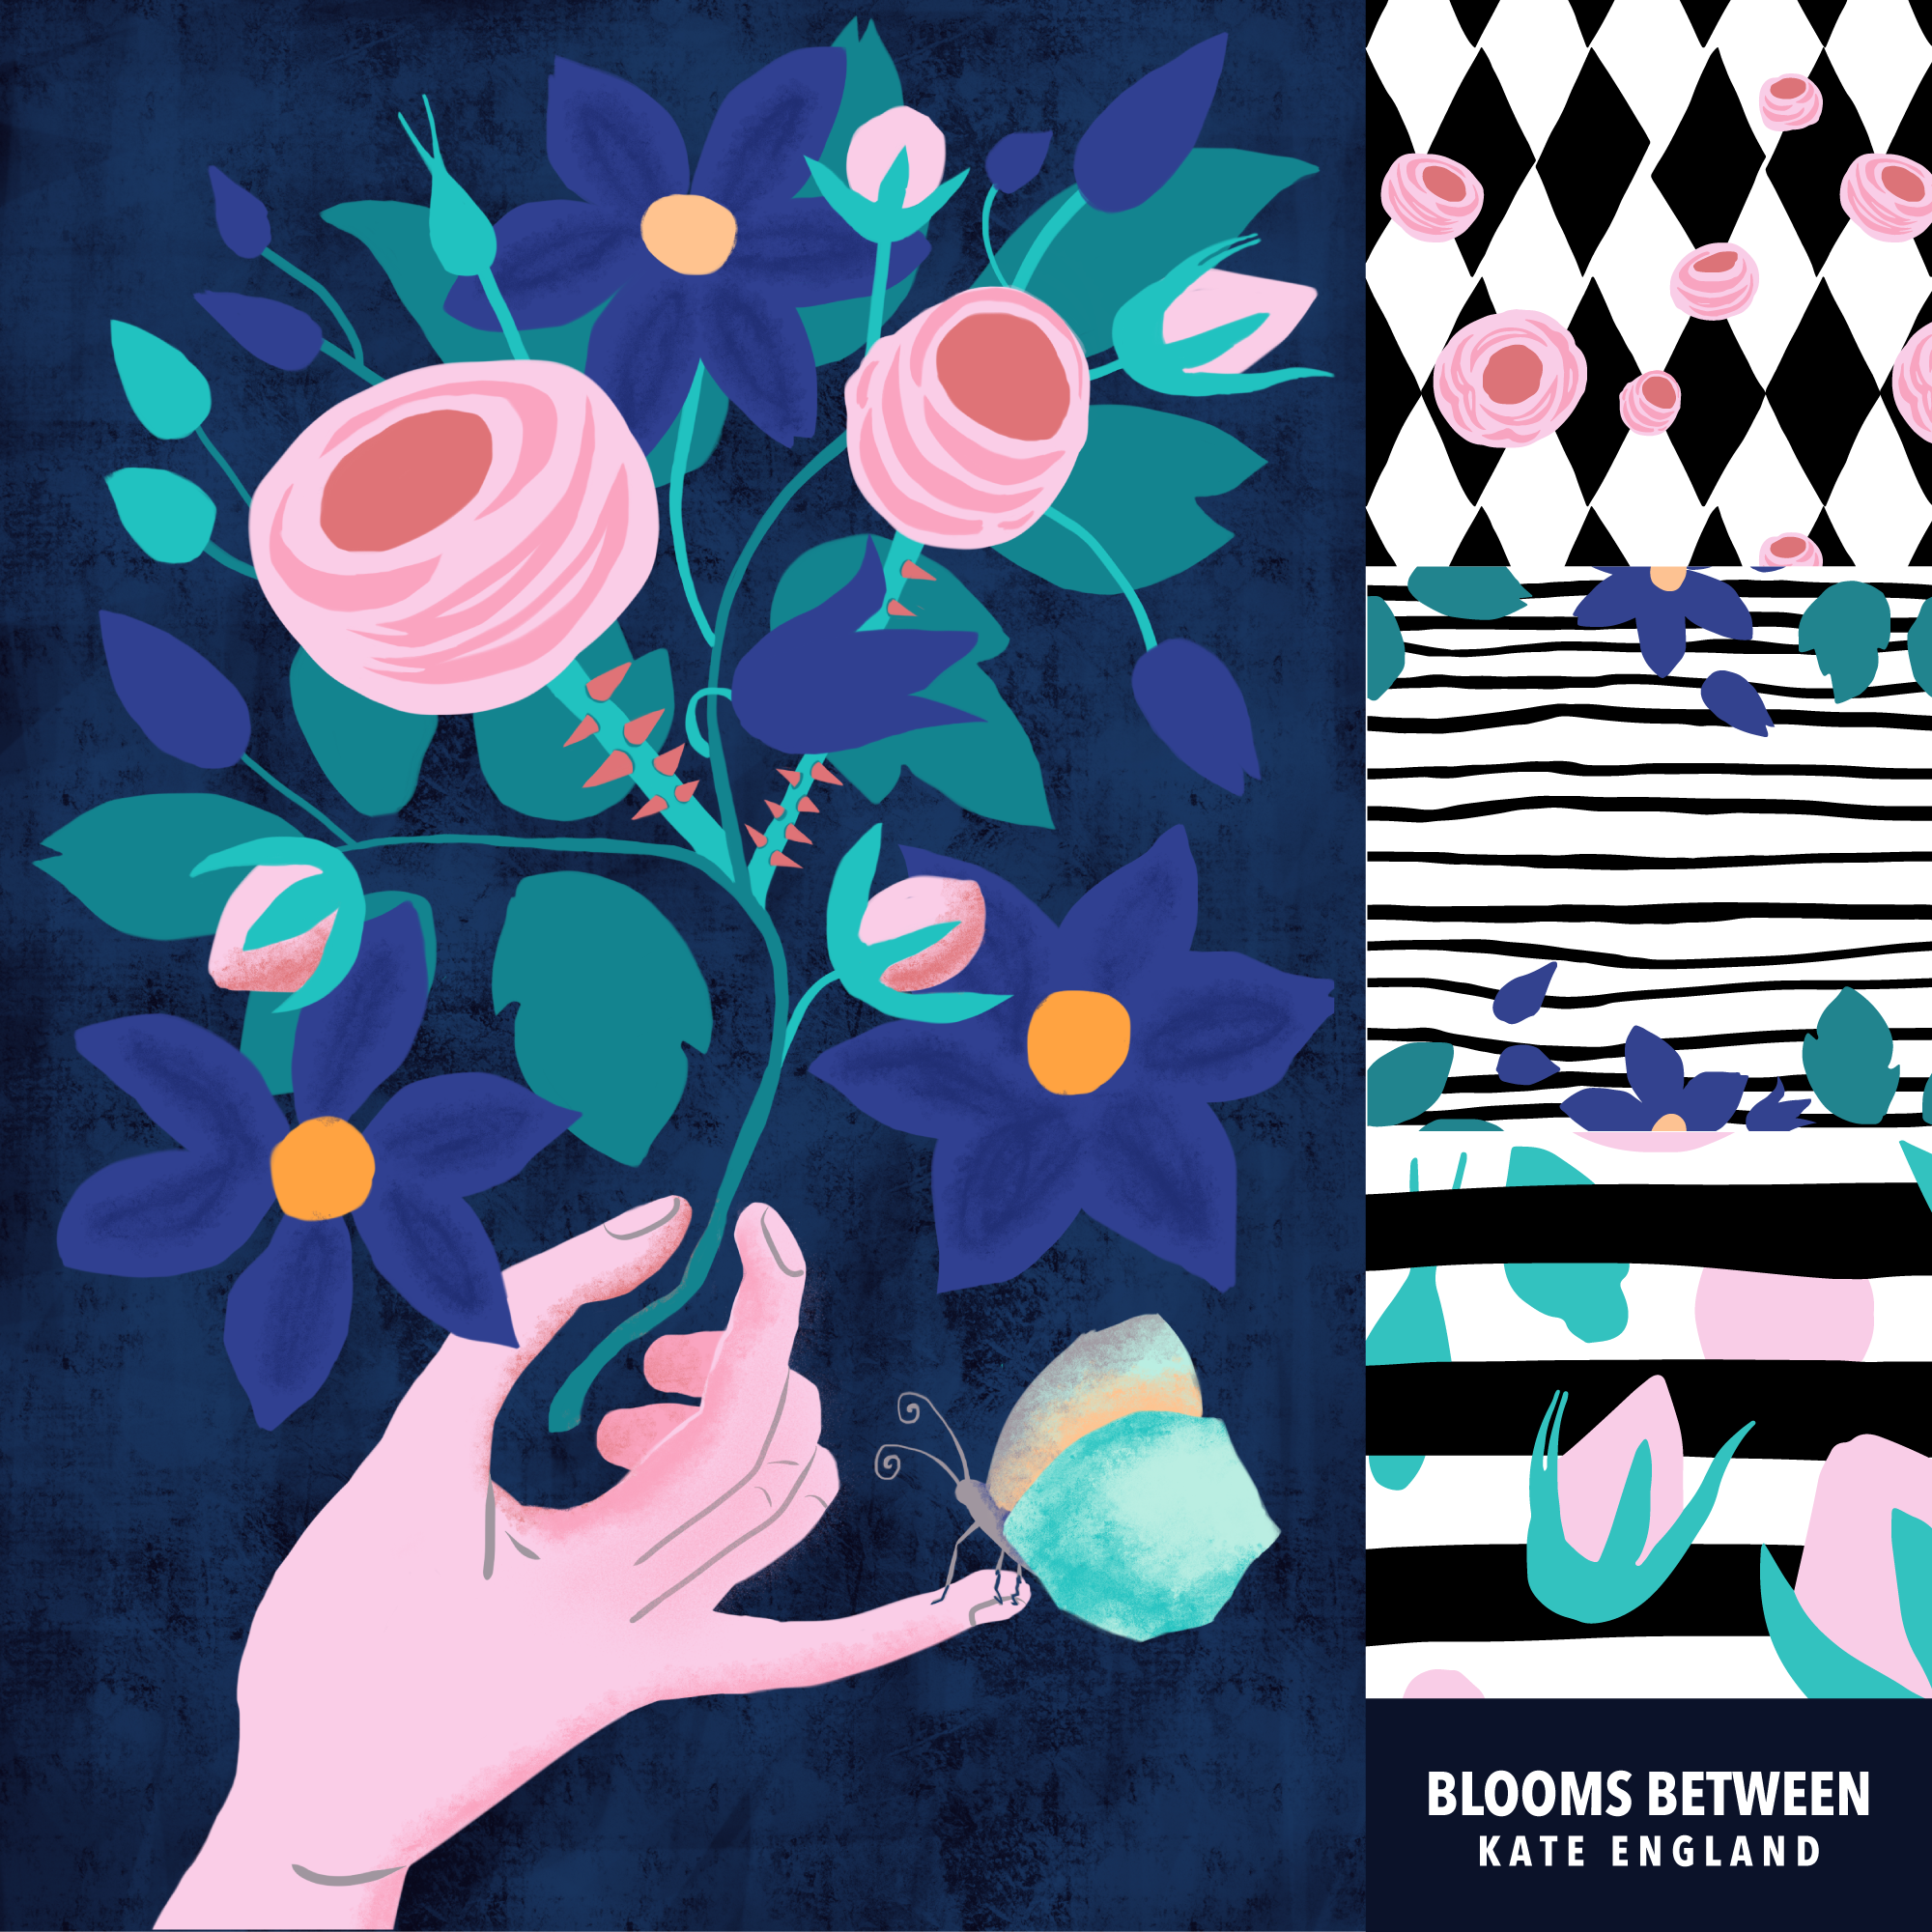 Blooms Between by Kate England